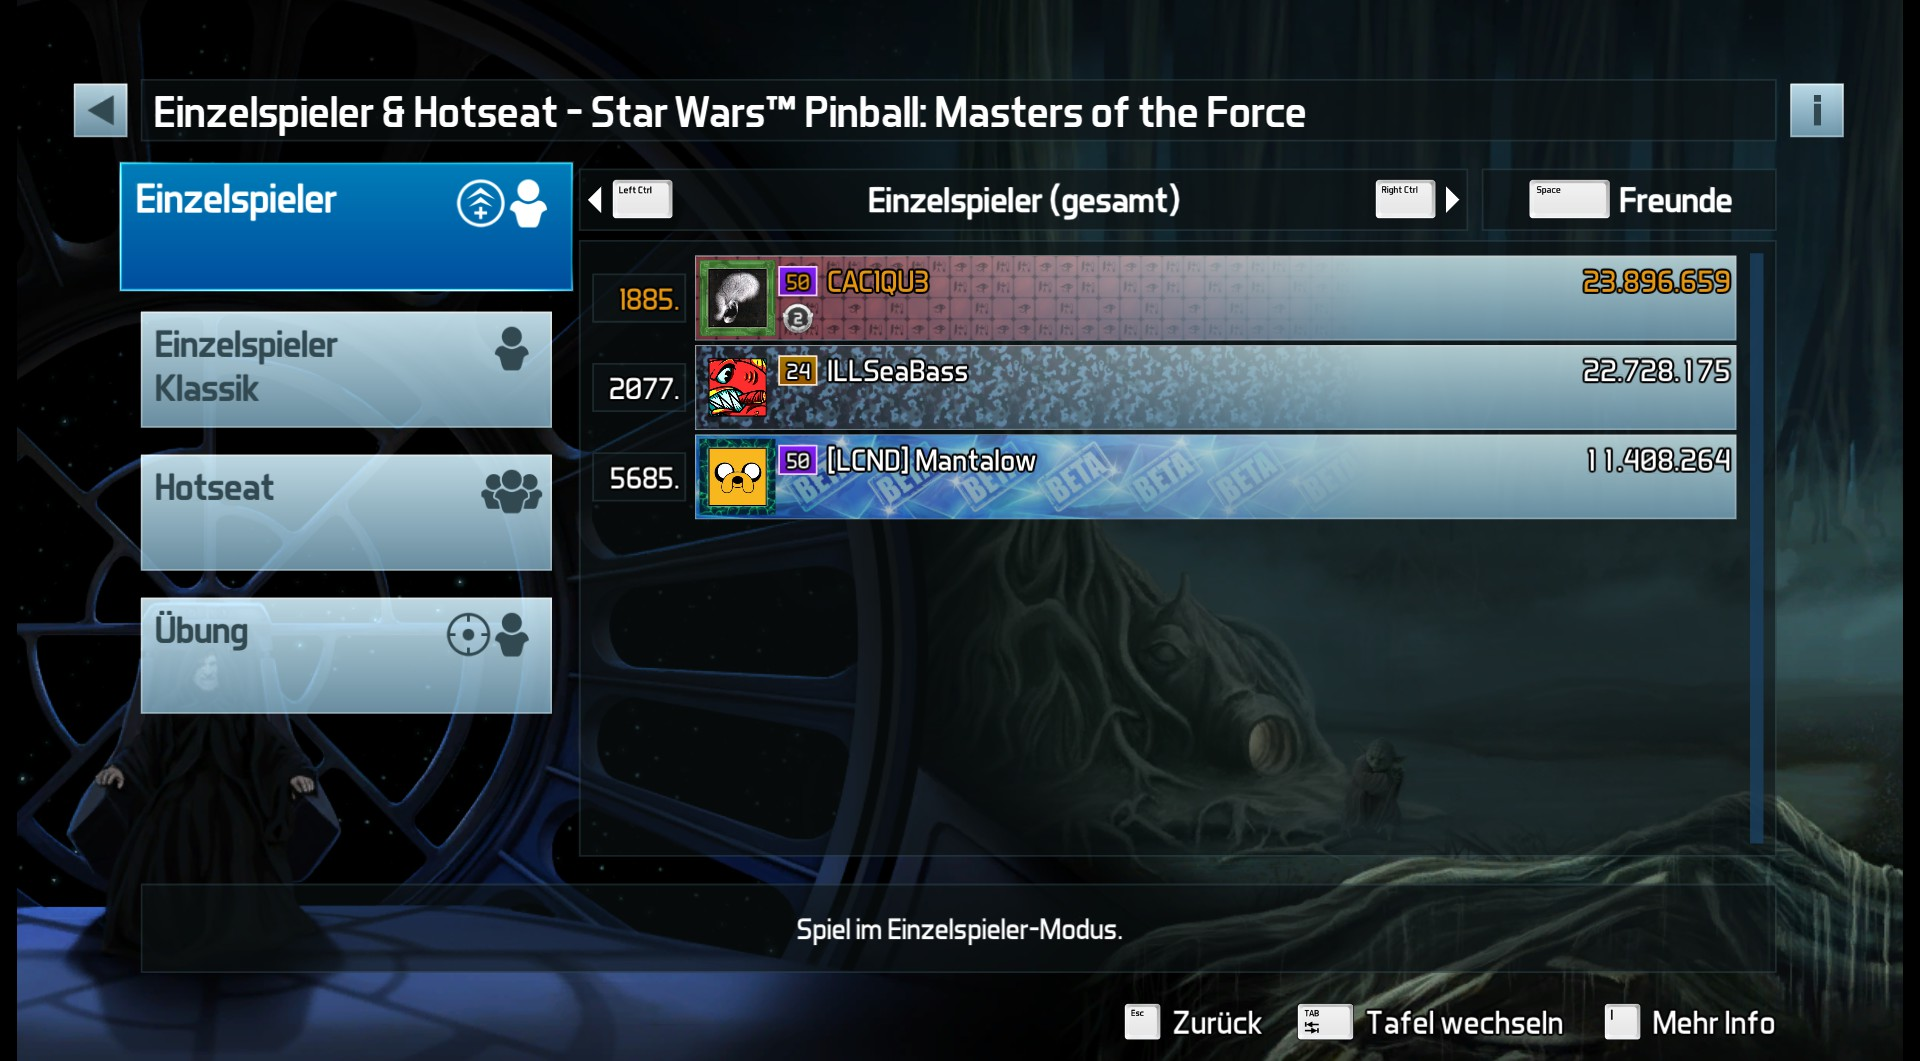 CAC1QU3: Pinball FX3: Star Wars Pinball: Masters of the Force (PC) 23,896,659 points on 2019-04-14 23:26:49